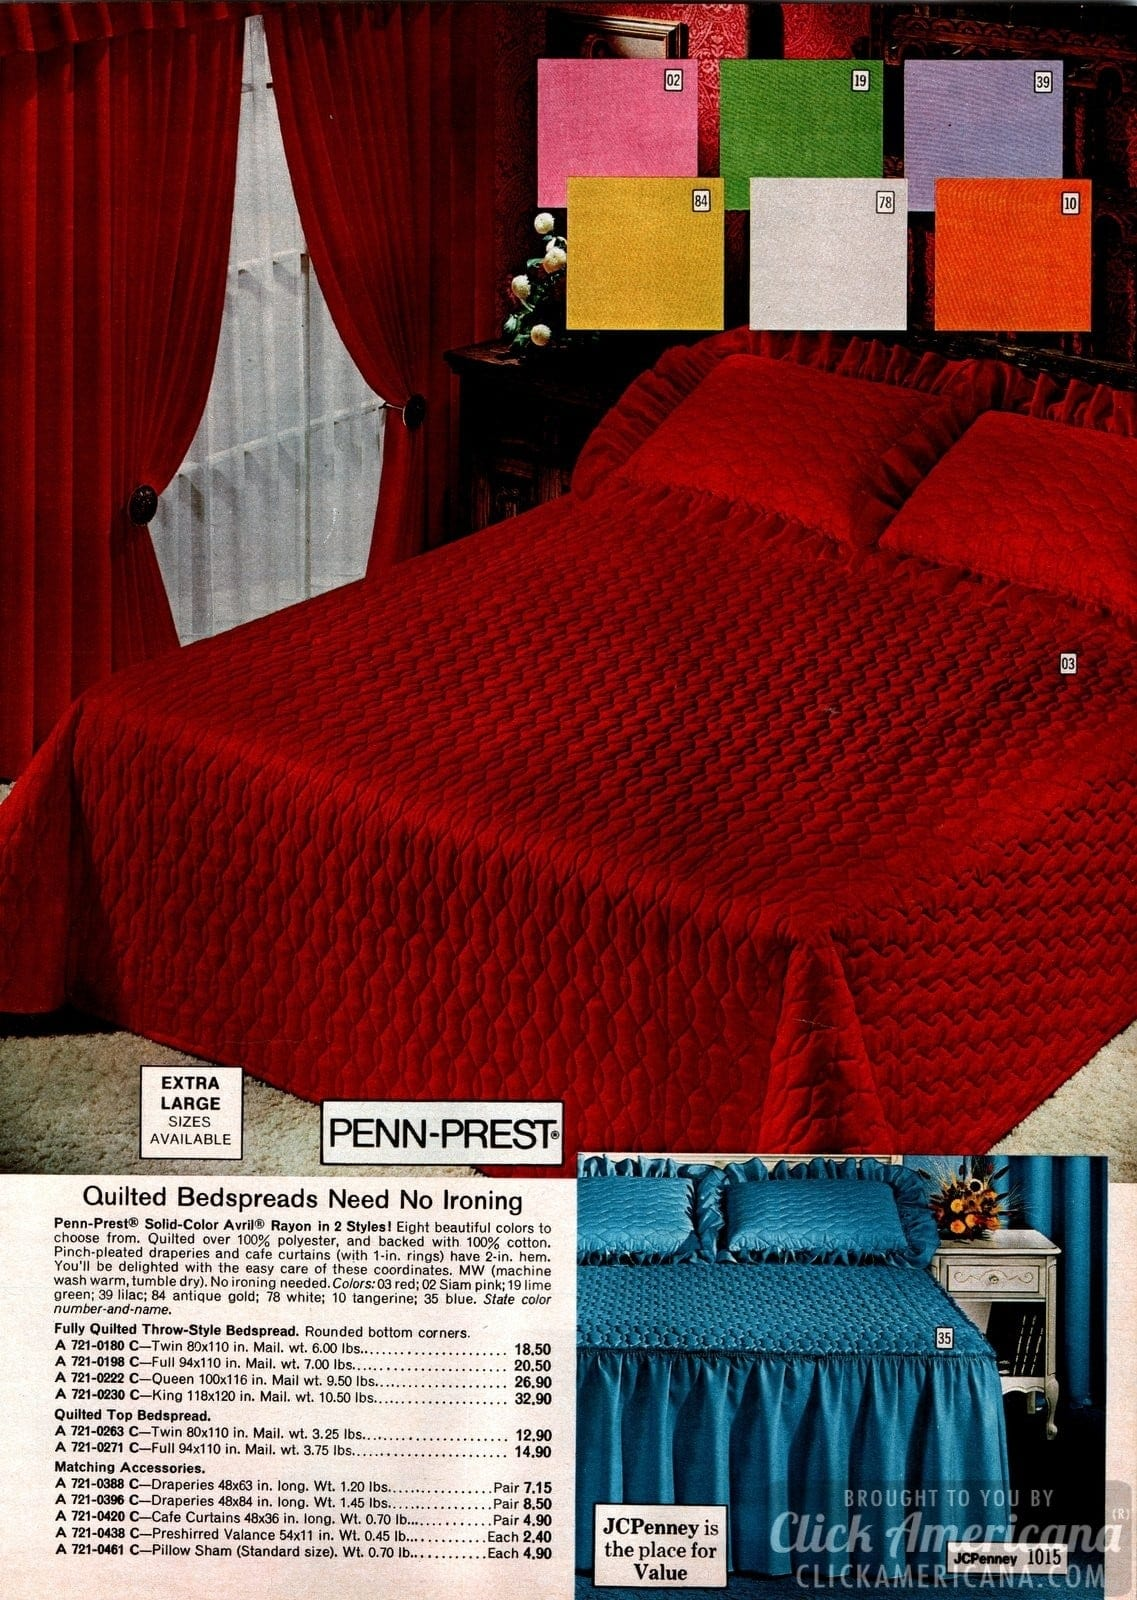 No-iron quilted bedspreads in solid colors